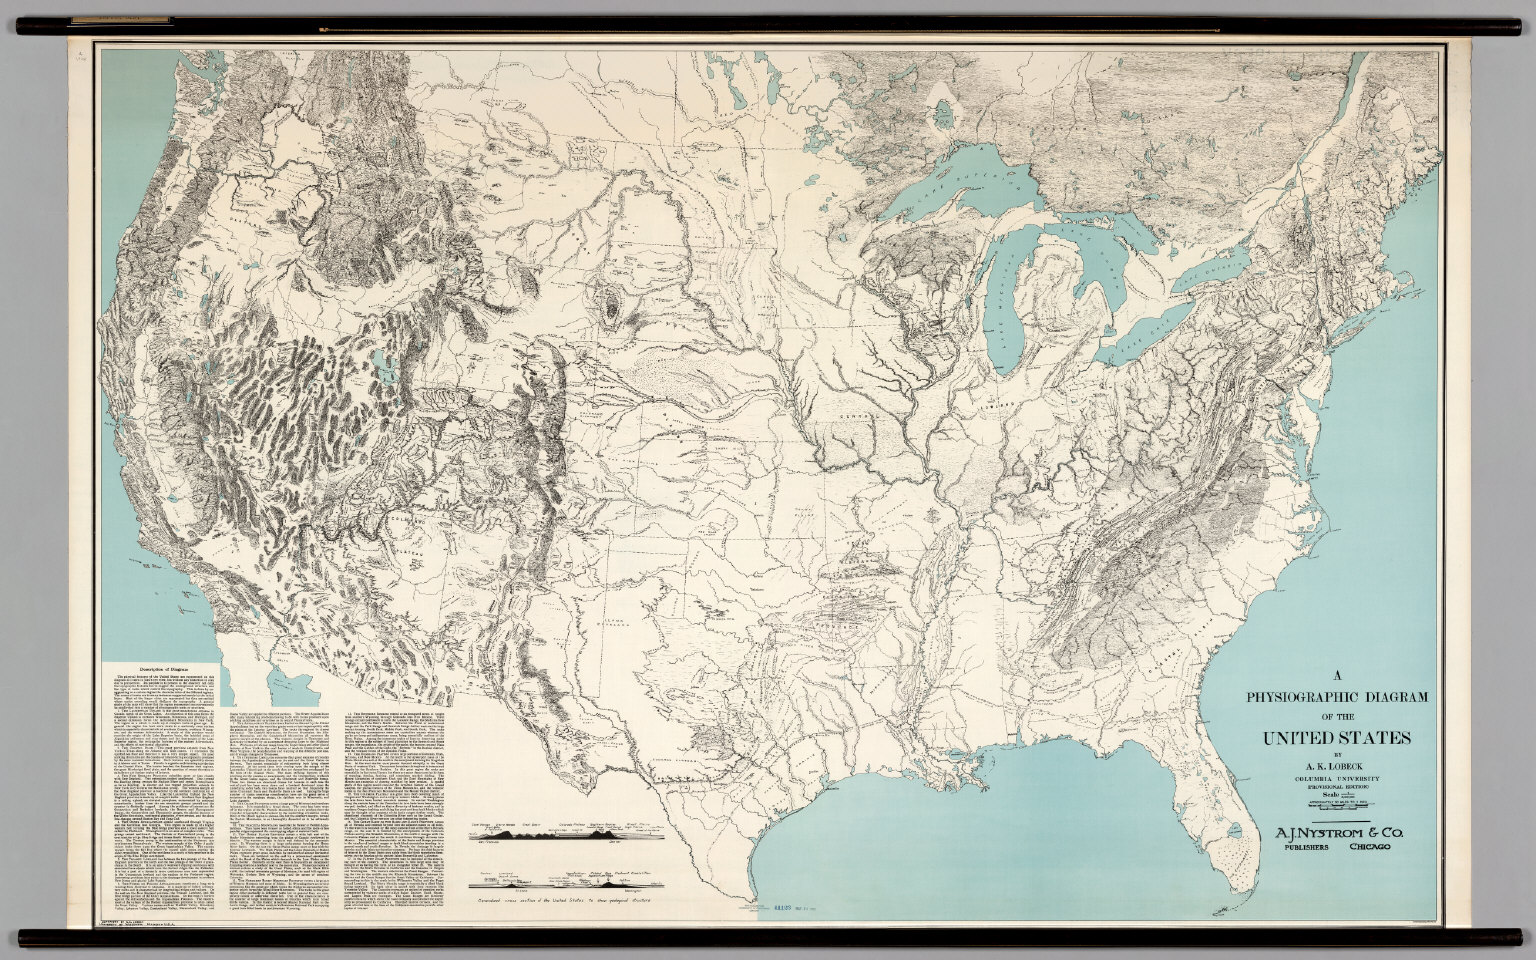 United States -- Physiographic Diagram (Lobeck)